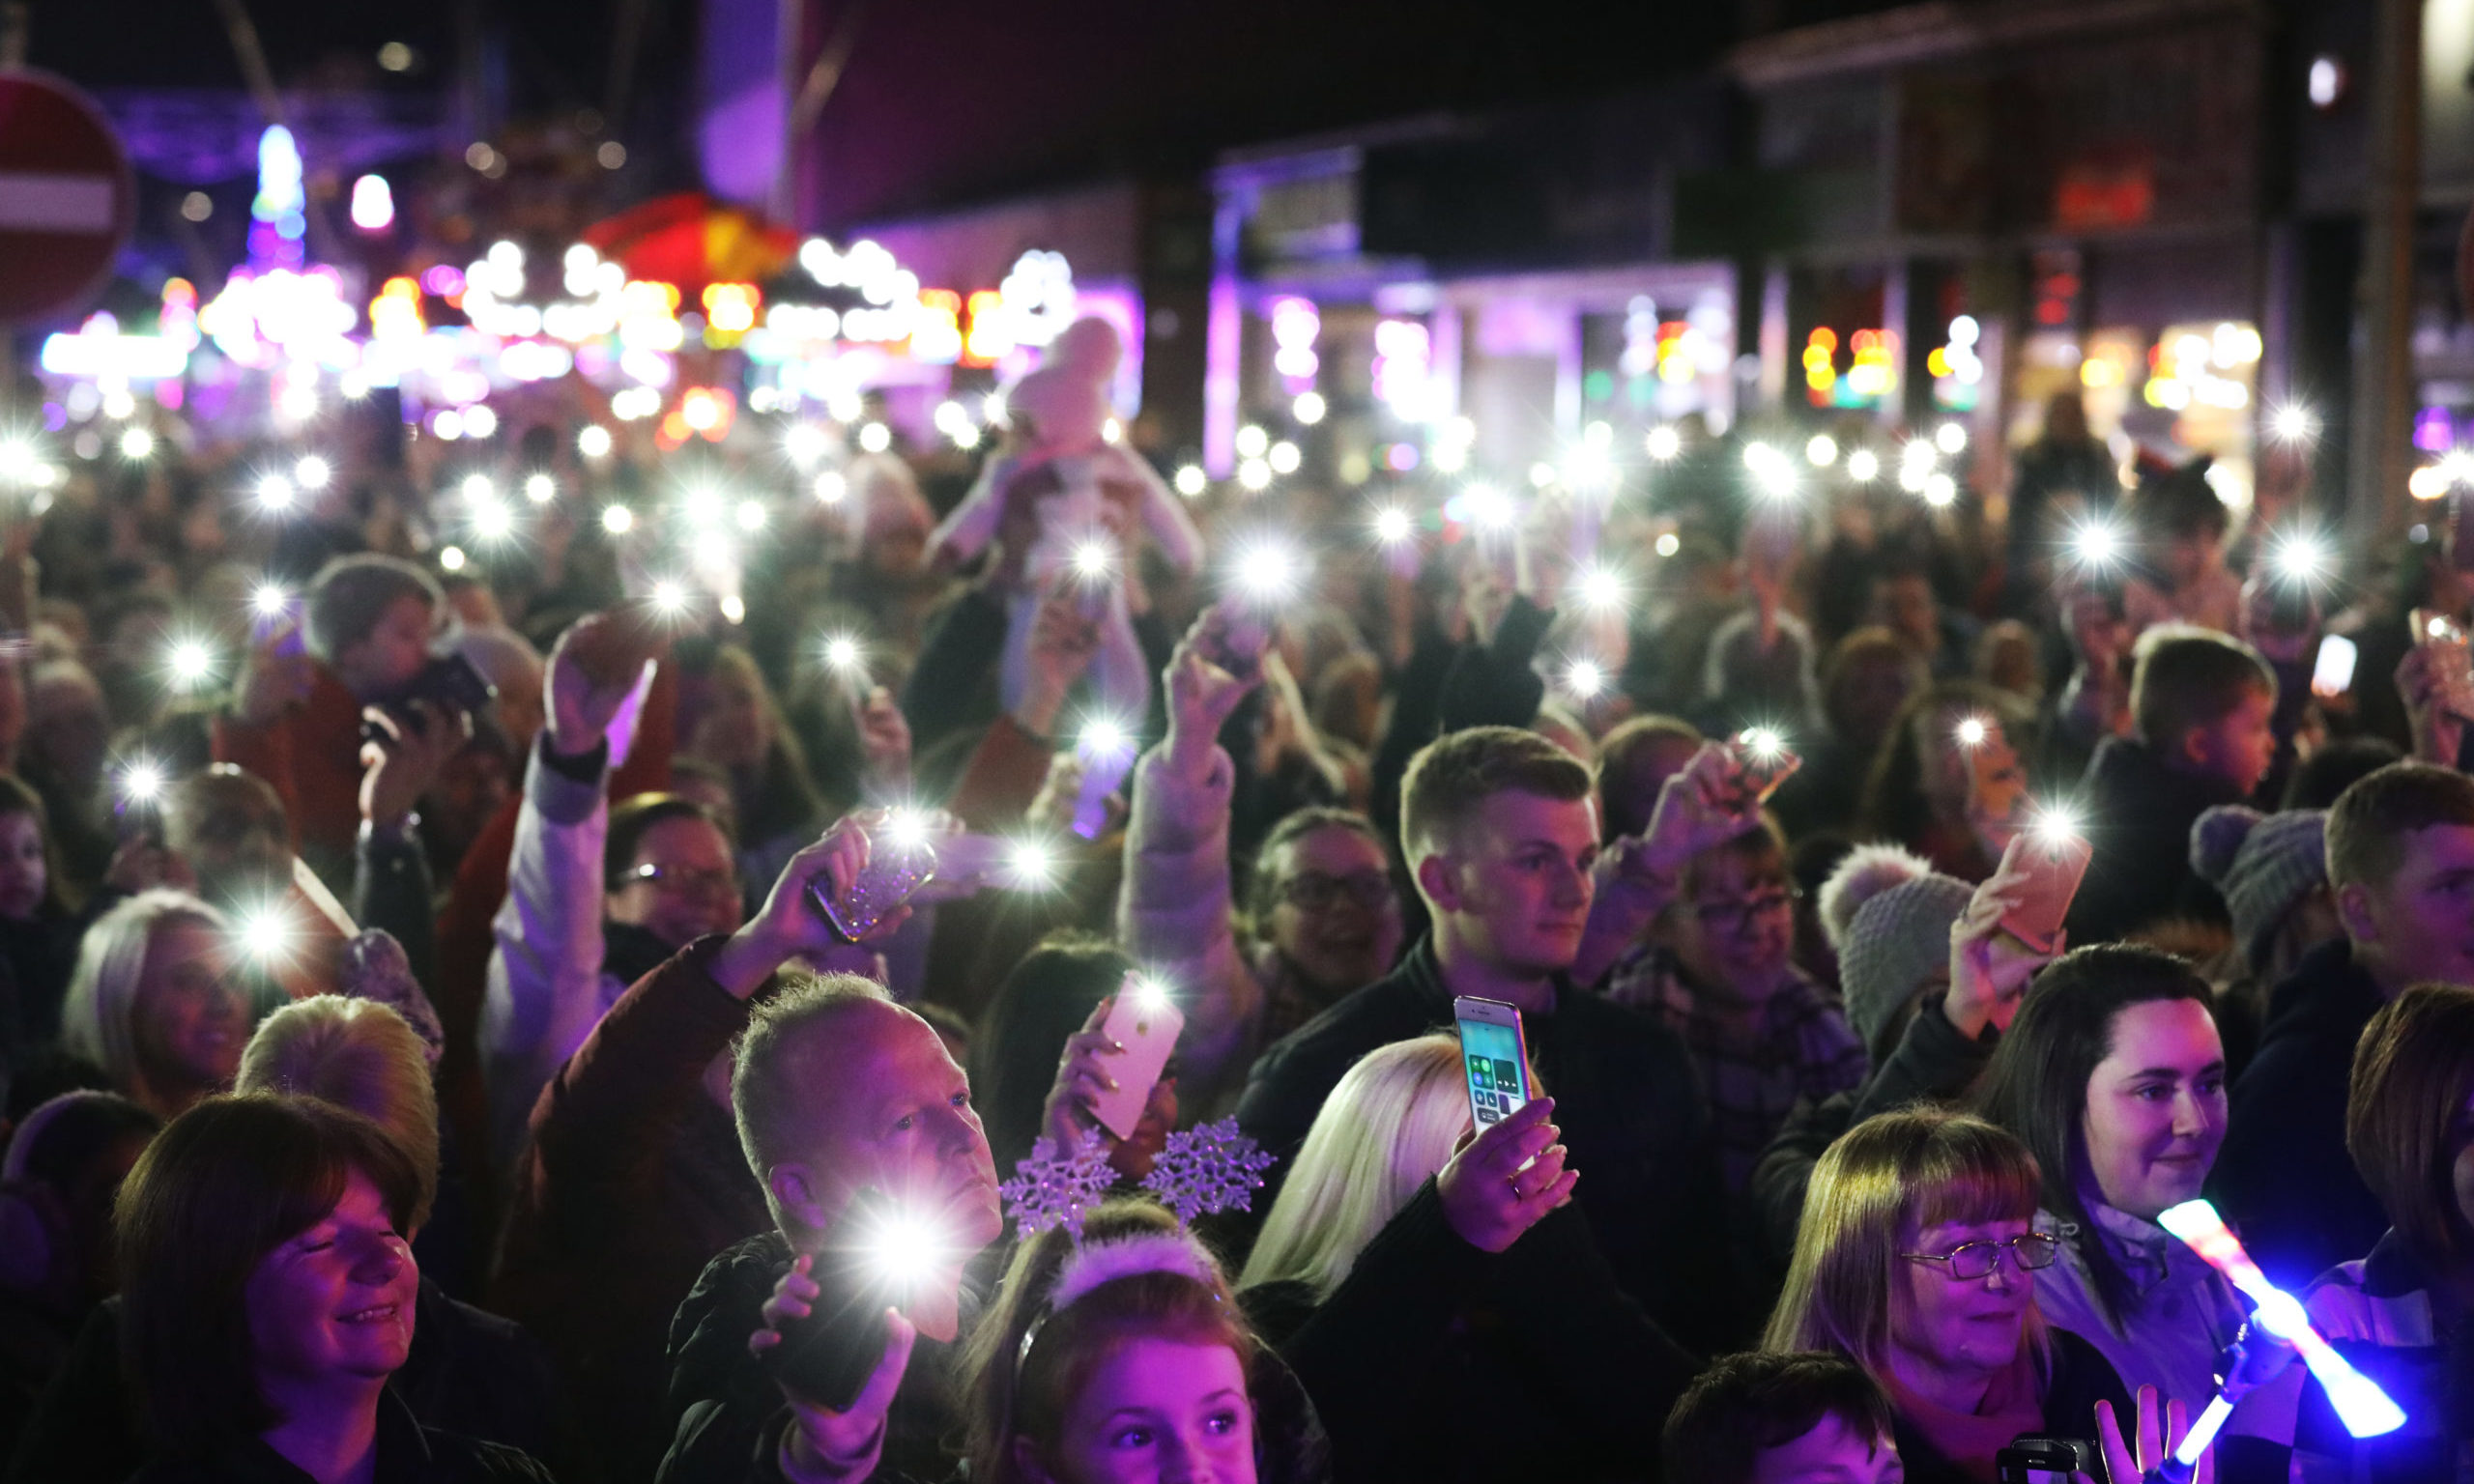 Broughty Ferry Christmas Light Switch on from 2018 Picture shows; The crowd enjoying the show. Thursday 14th November, 2018. Mhairi Edwards/DCT Media